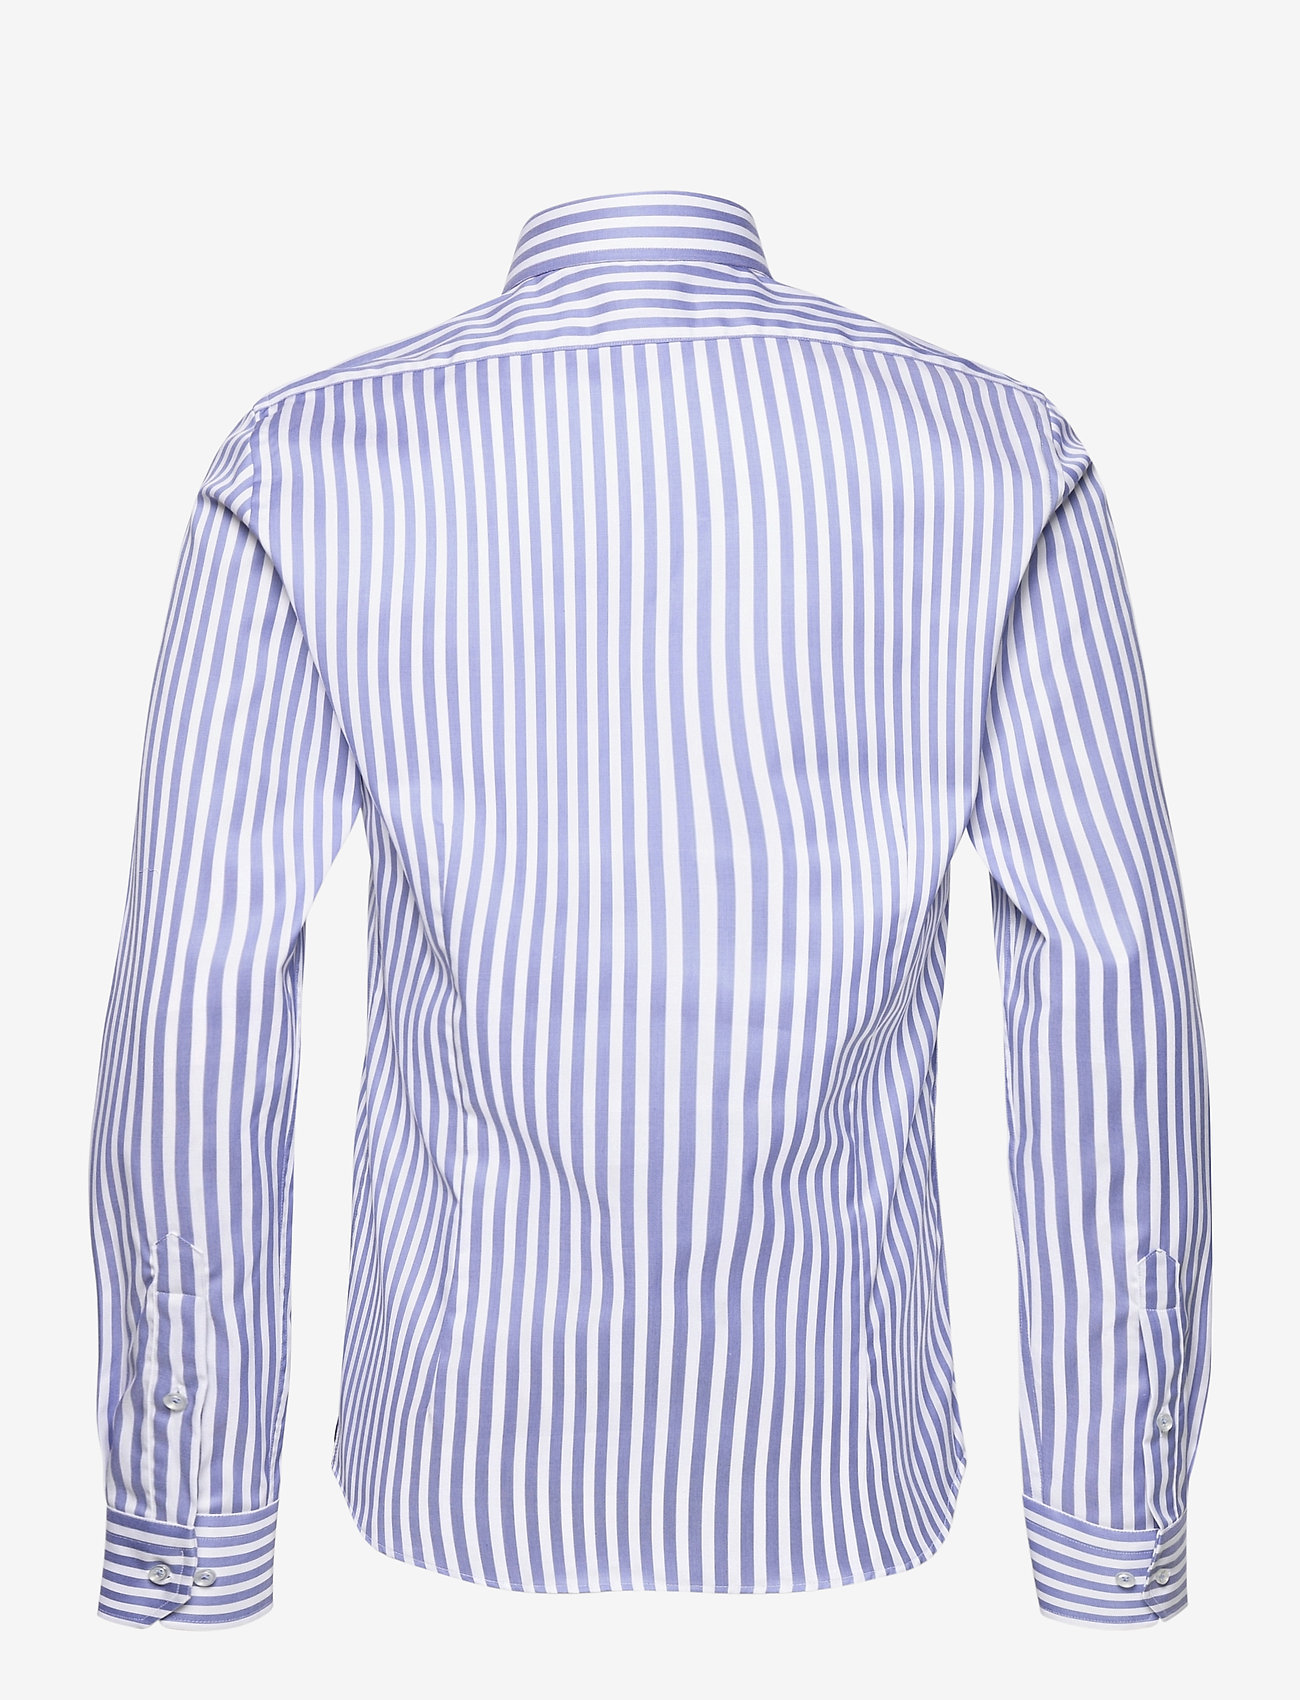 XO Shirtmaker by Sand Copenhagen - 8734 - Jake SC - business skjortor - blue - 1